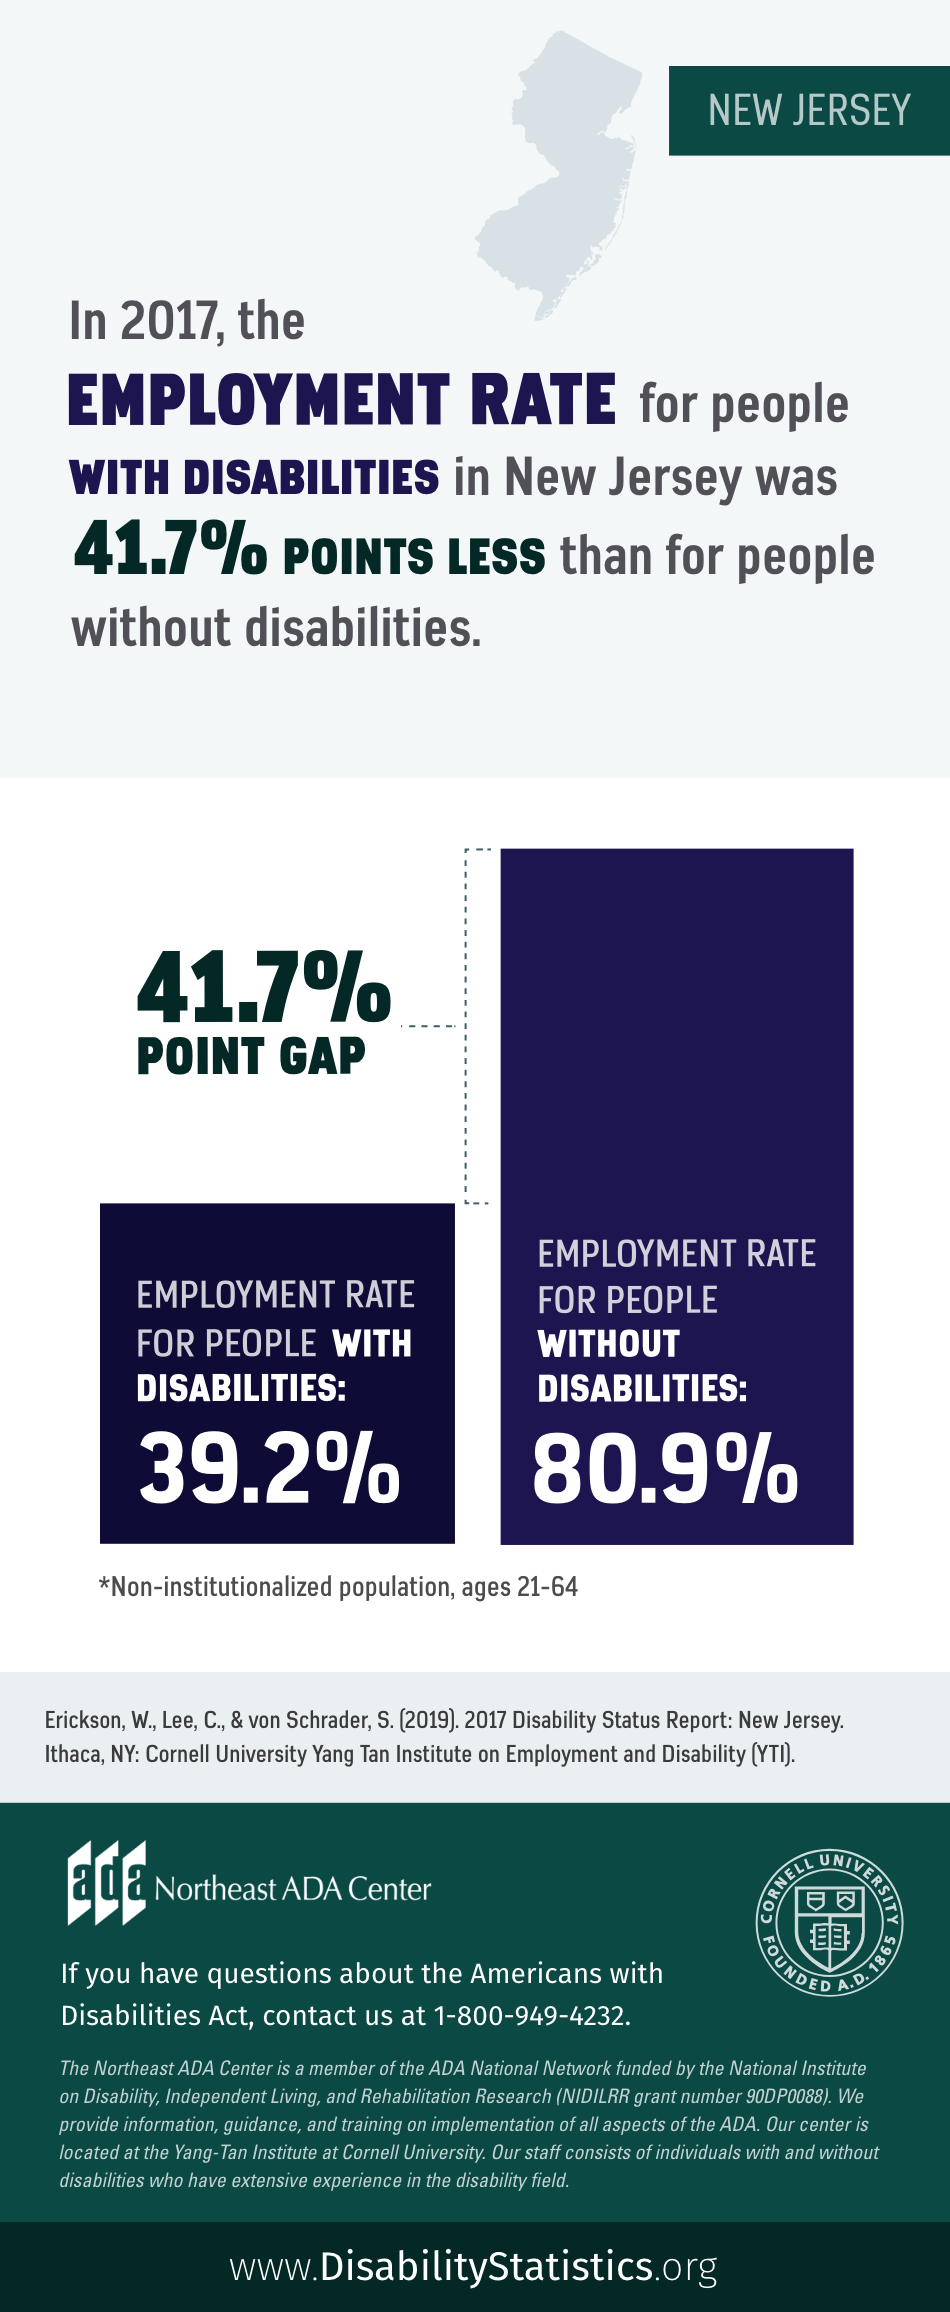 Infographic featuring text on top of an outline of New Jersey along with a bar graph showing employment rates for people with disabilities and people without disabilities in the New Jersey: In 2017, the Employment Rate for people with disabilities in New Jersey was 41.7% points less than for people without disabilities. The Employment rate for people with disabilities was 39.2%. The Employment rate for people without disabilities was 80.9%. Statistics for non-institutionalized population, ages 21-64. Source: Erickson, W., Lee, C., & von Schrader, S. (2019). 2017 Disability Status Report: United States. Ithaca, NY: Cornell University Yang-Tan Institute on Employment and Disability (YTI). If you have questions about the Americans with Disabilities Act, contact the Northeast ADA Center at 1-800-949-4232.